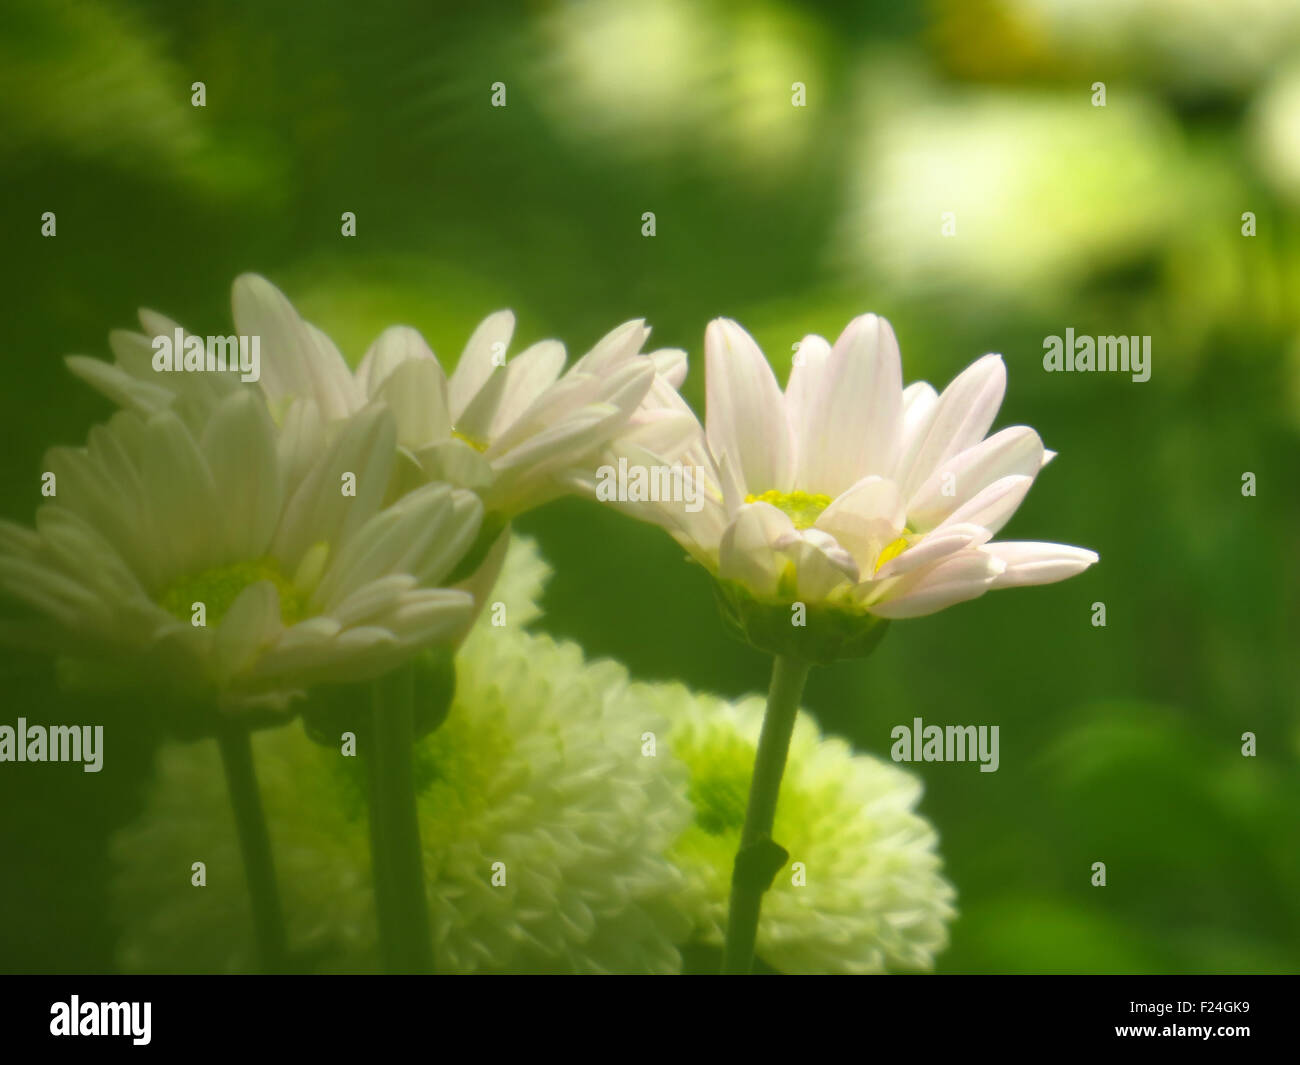 Beautiful flowers of india stock photos beautiful flowers of india beautiful white flowers in the tropical green jungles in india stock image izmirmasajfo